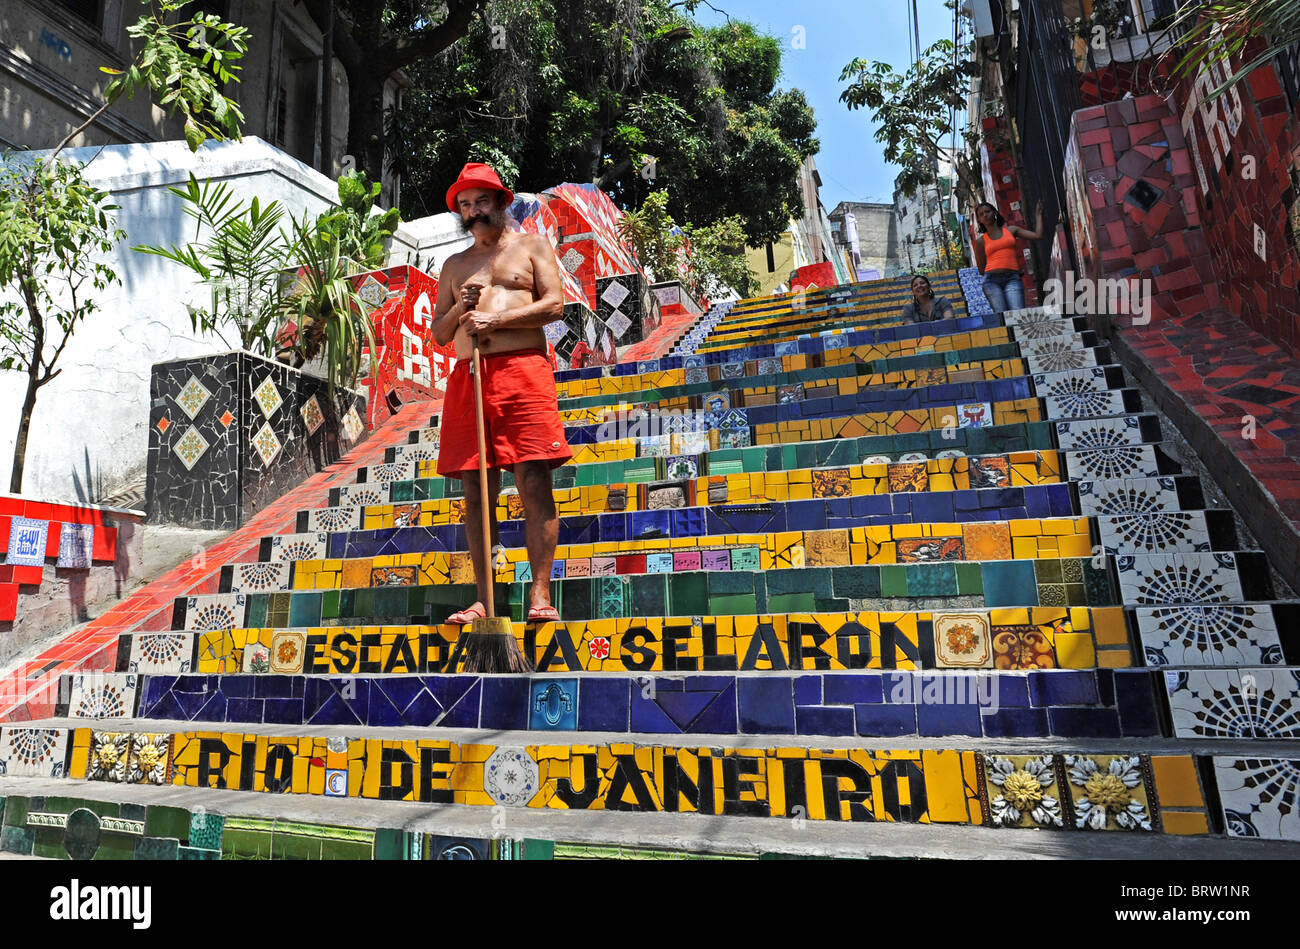 Artist Jorge Selarón stands in the centre of his world famous work the Escadaria Selarón in Santa Teresa/ - Stock Image